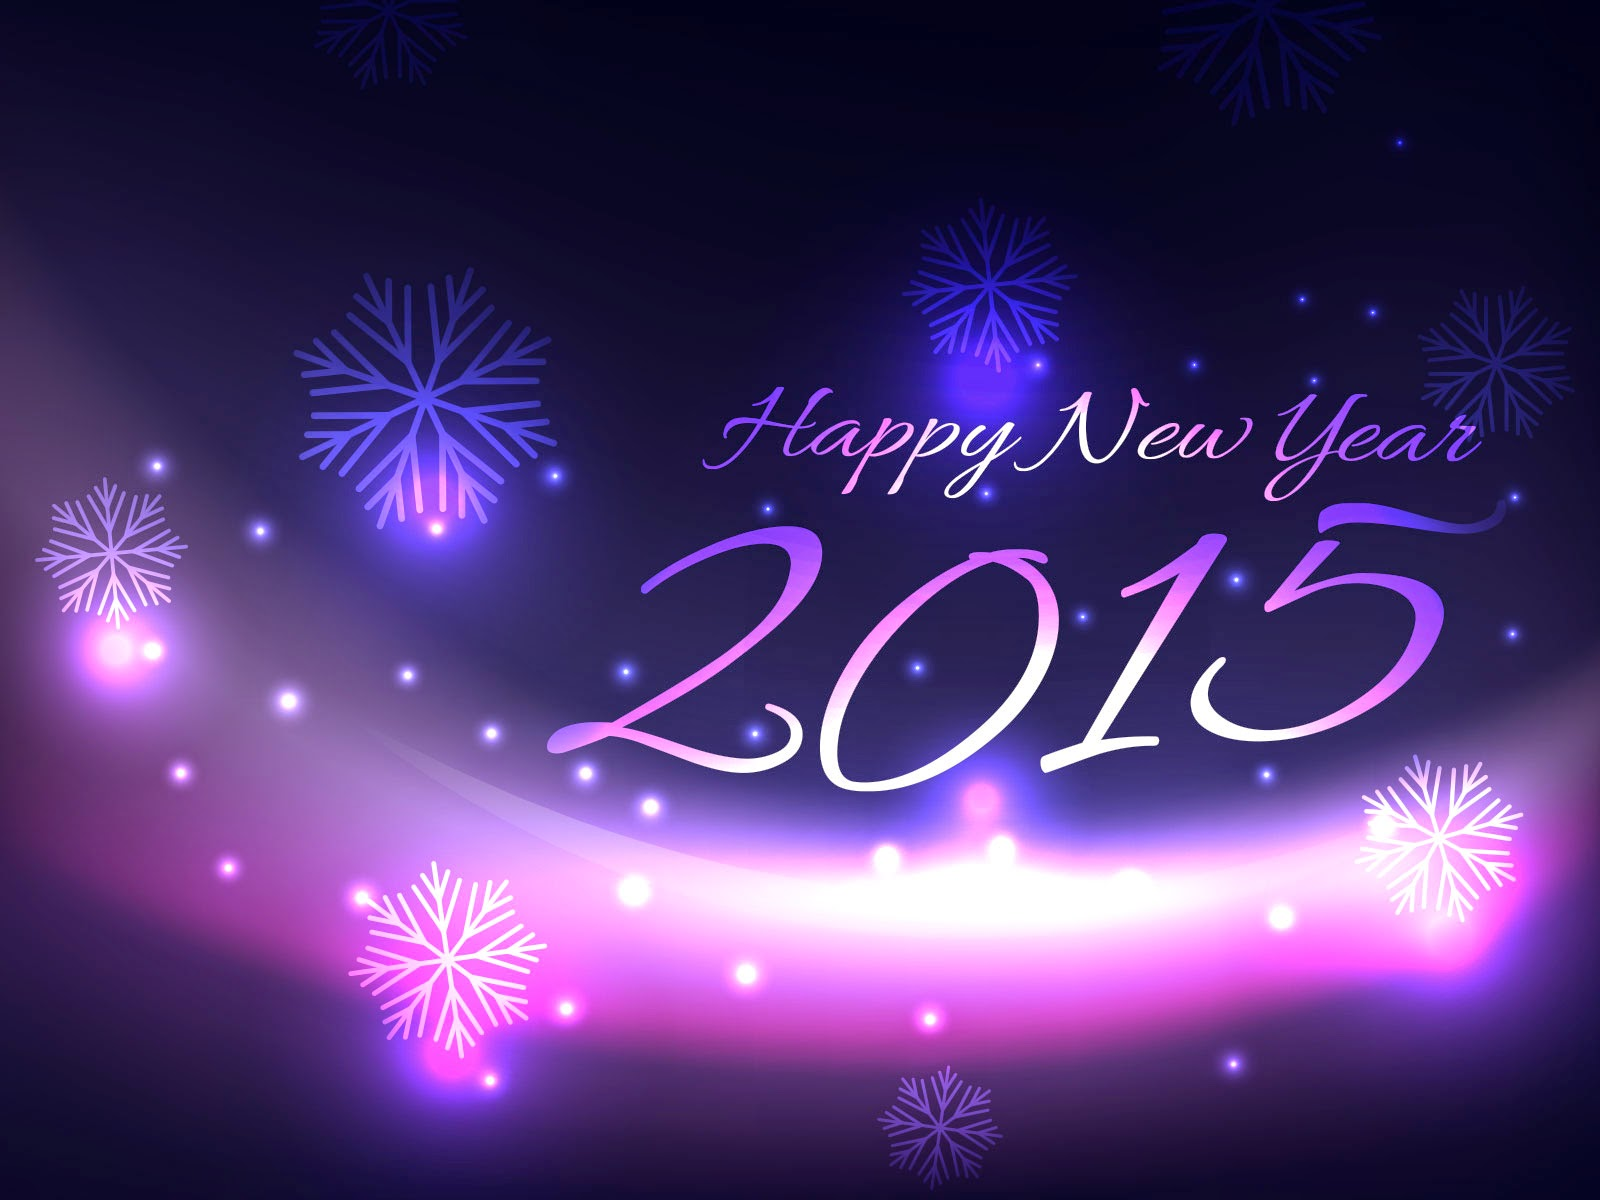 free happy new year wallpapers